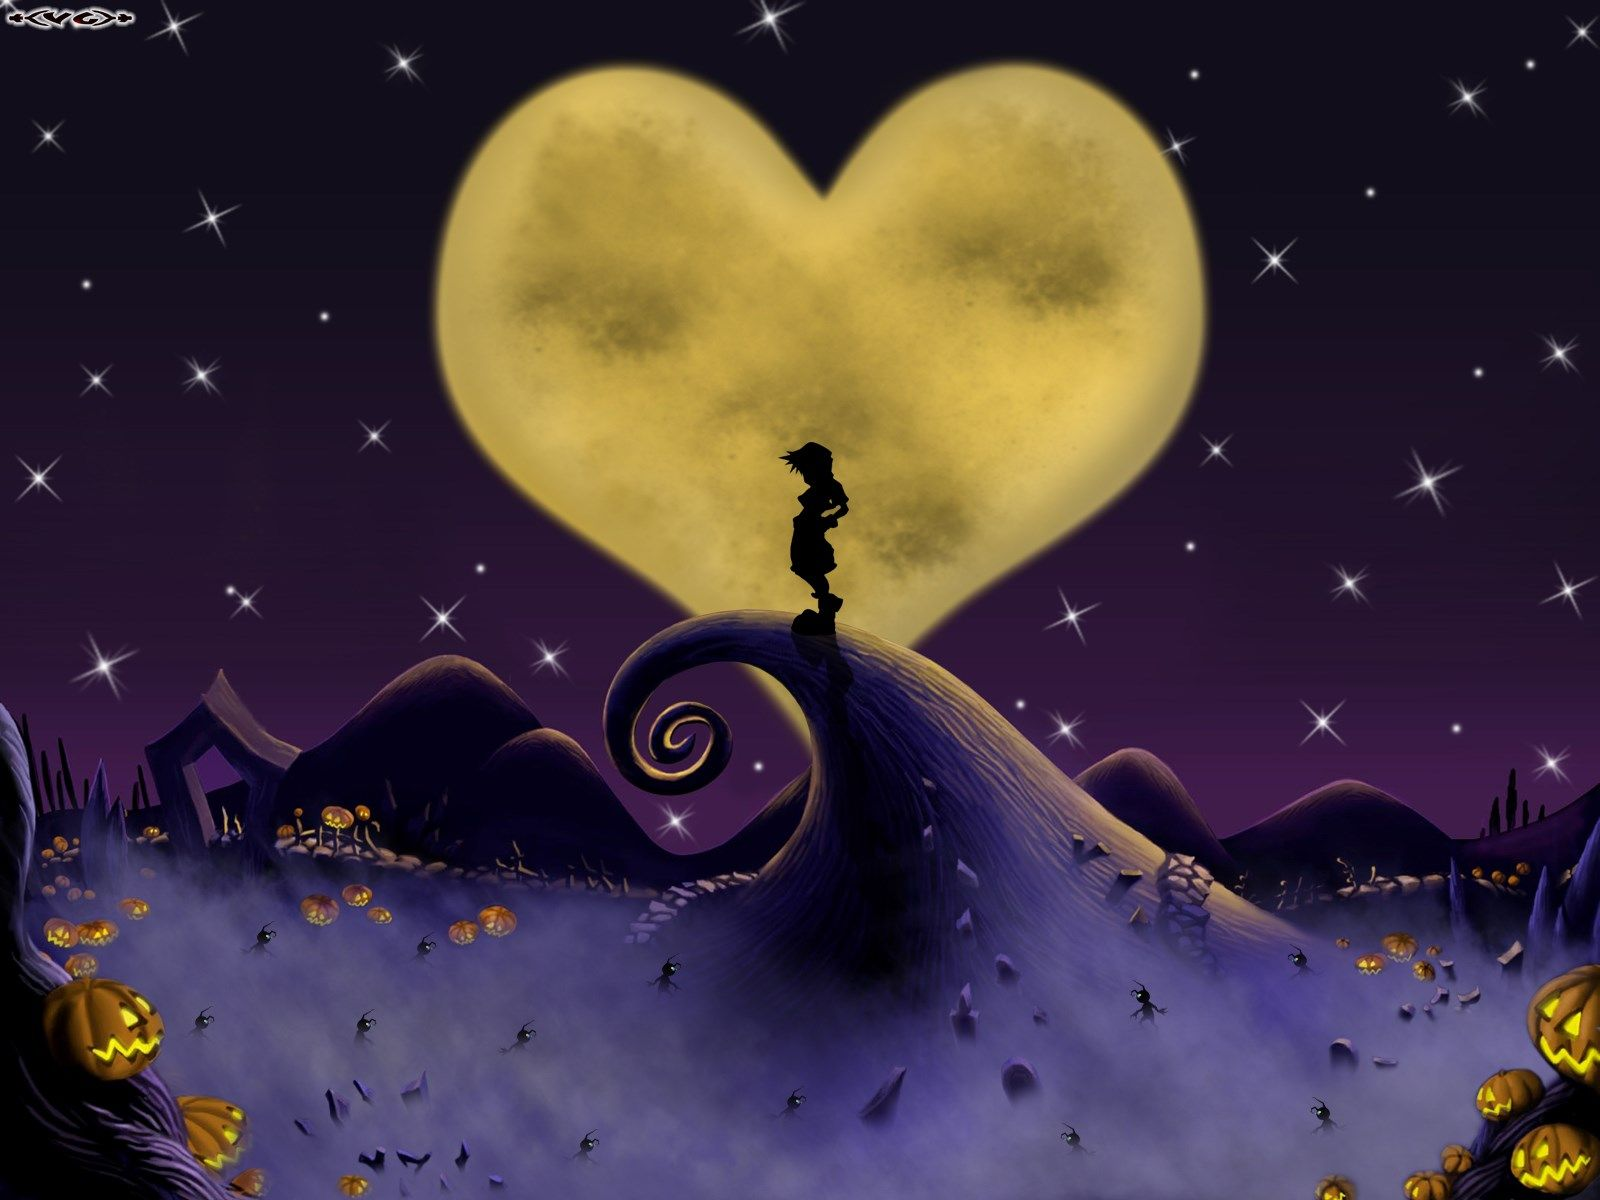 Great Wallpaper Halloween Nightmare Before Christmas - d05f4ee7759ca740ea863a0dd9682581  Pic_347517.jpg